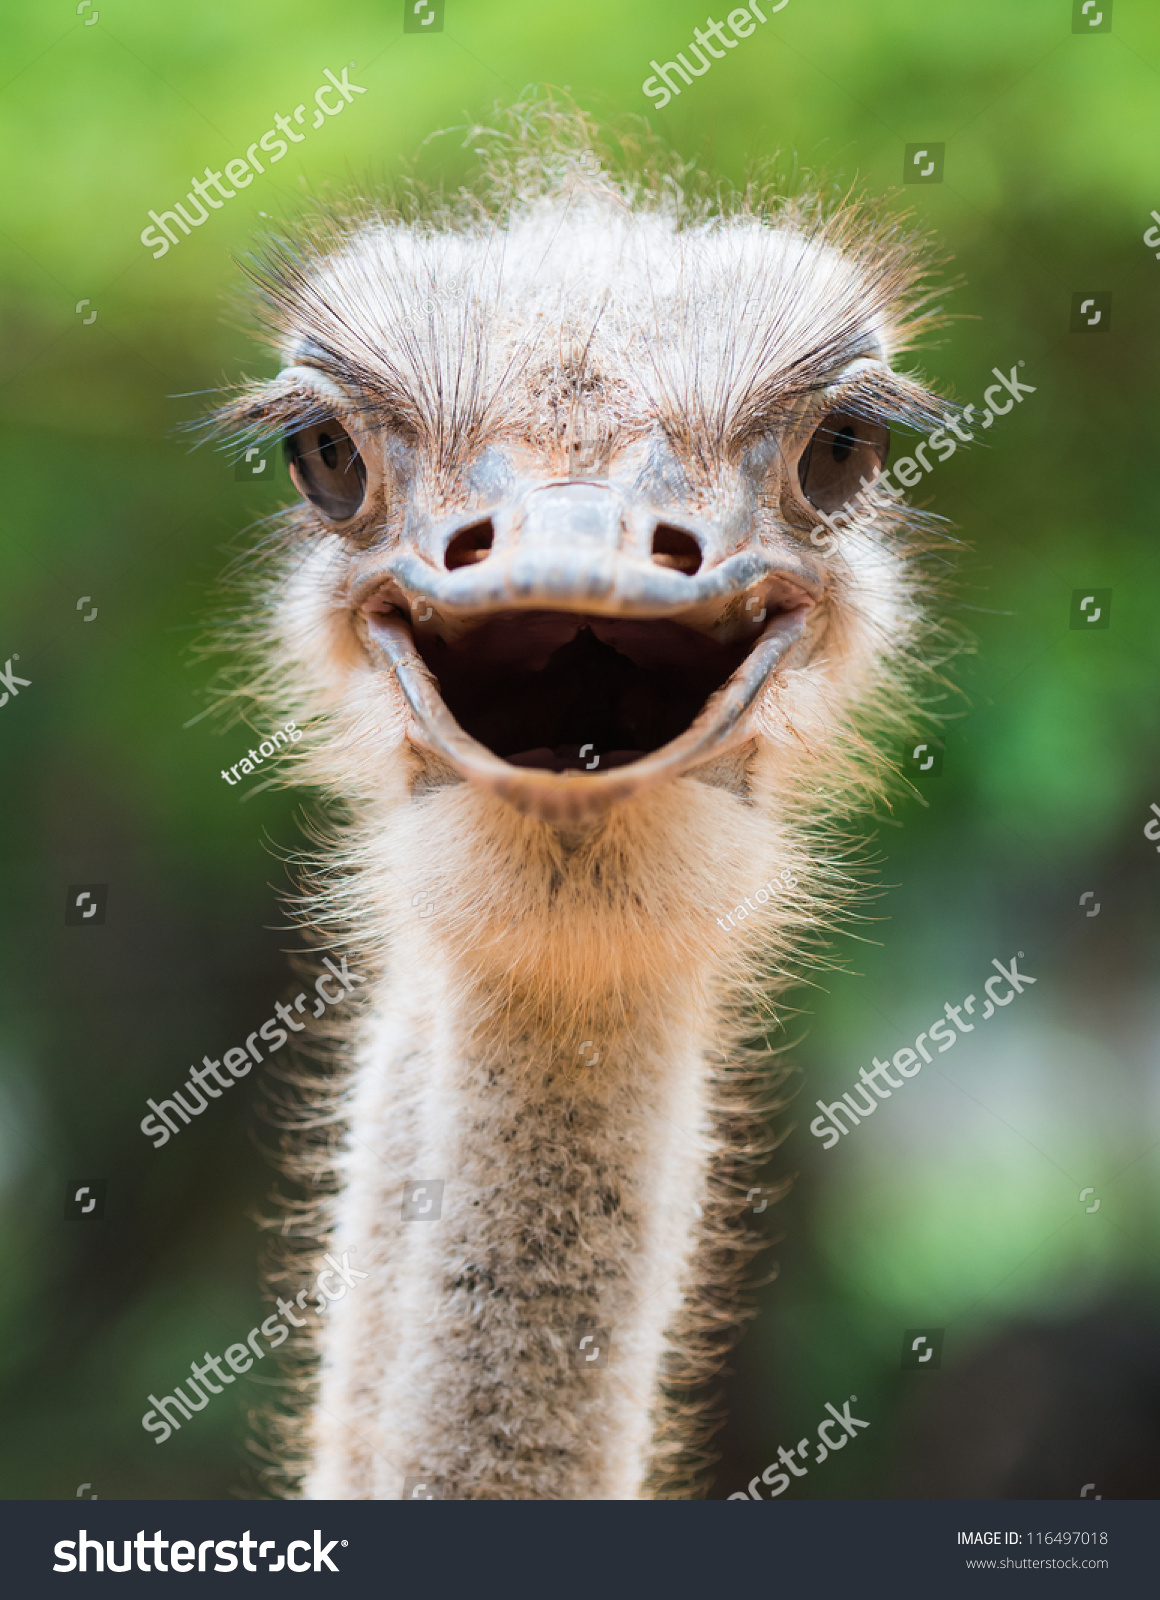 Funny animals smiling